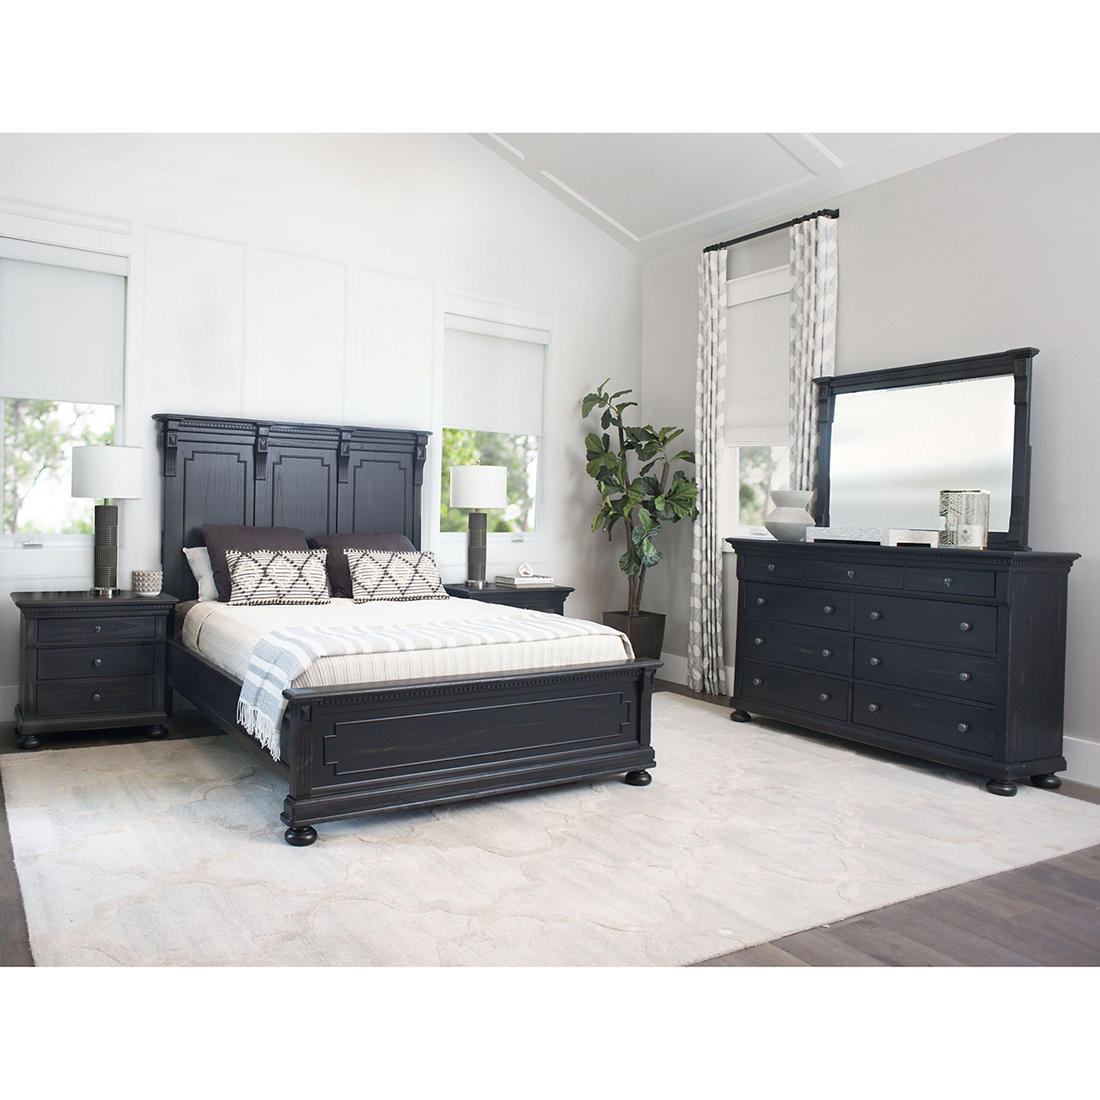 Abbyson Hartford Queen Size Bedroom Set 5pc Bjs Wholesale Club